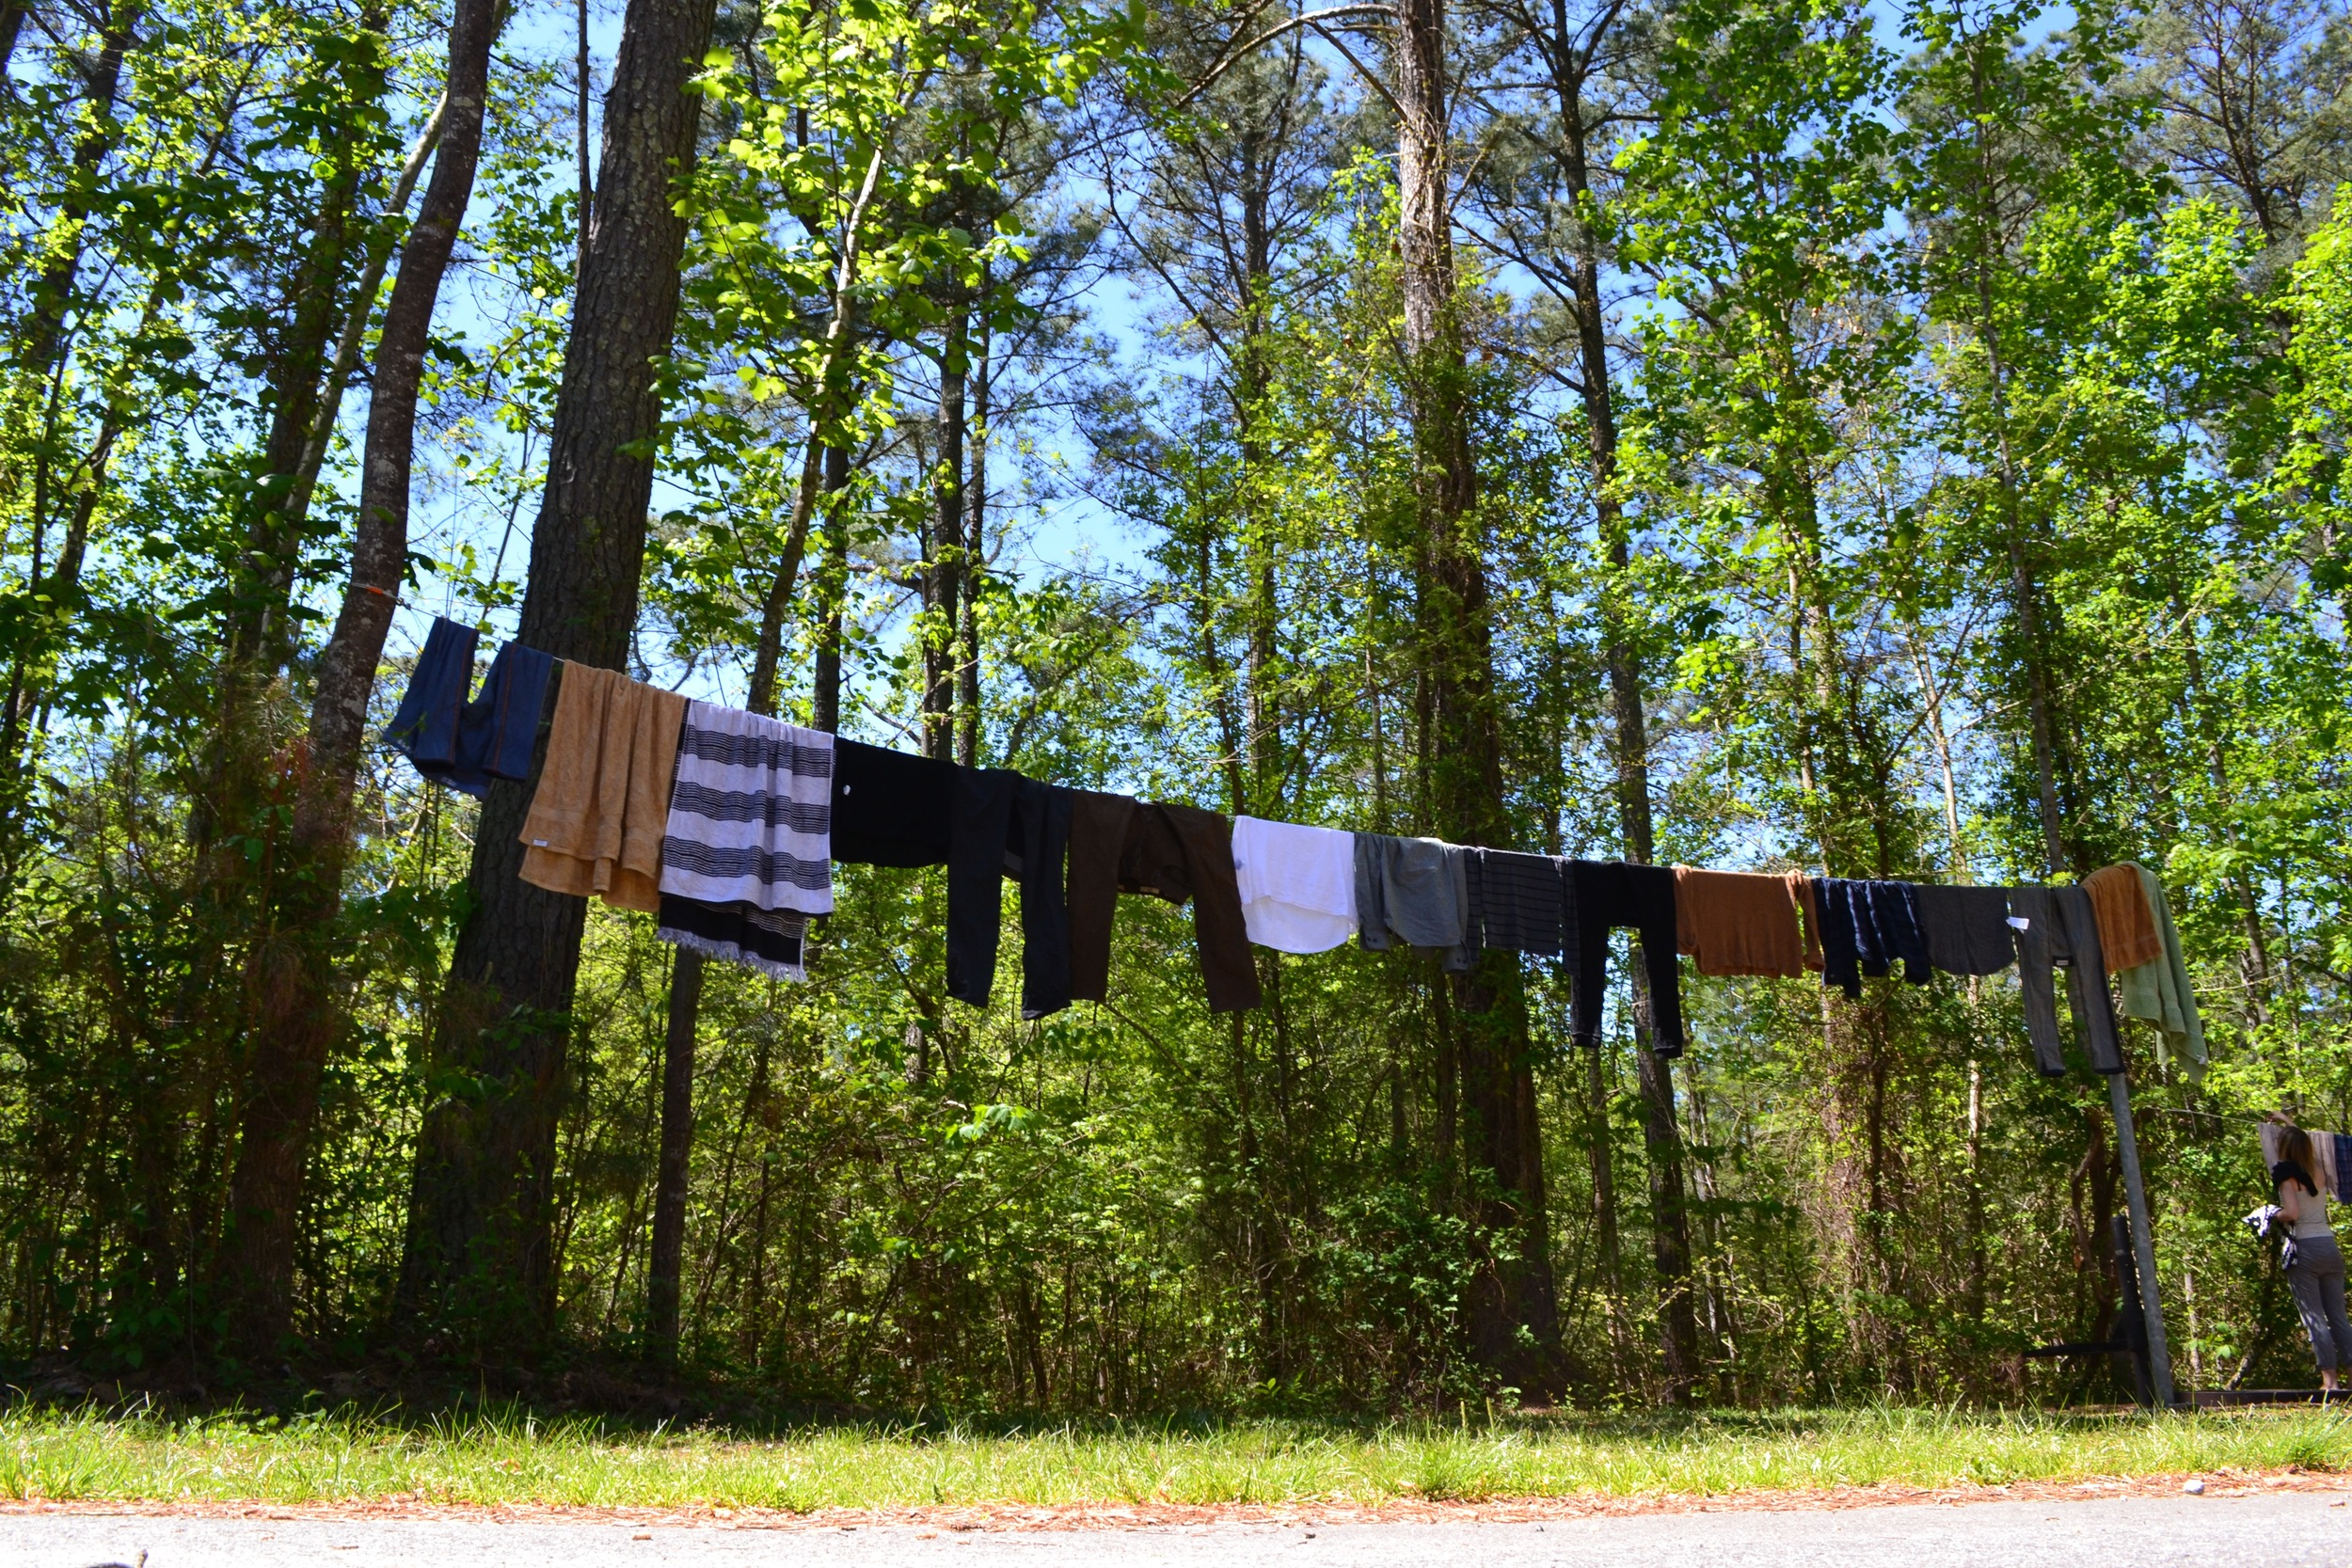 Hack #10: Bring a rope to hang dry your clothes after you wash them. It'll save you money and it's just really fun.